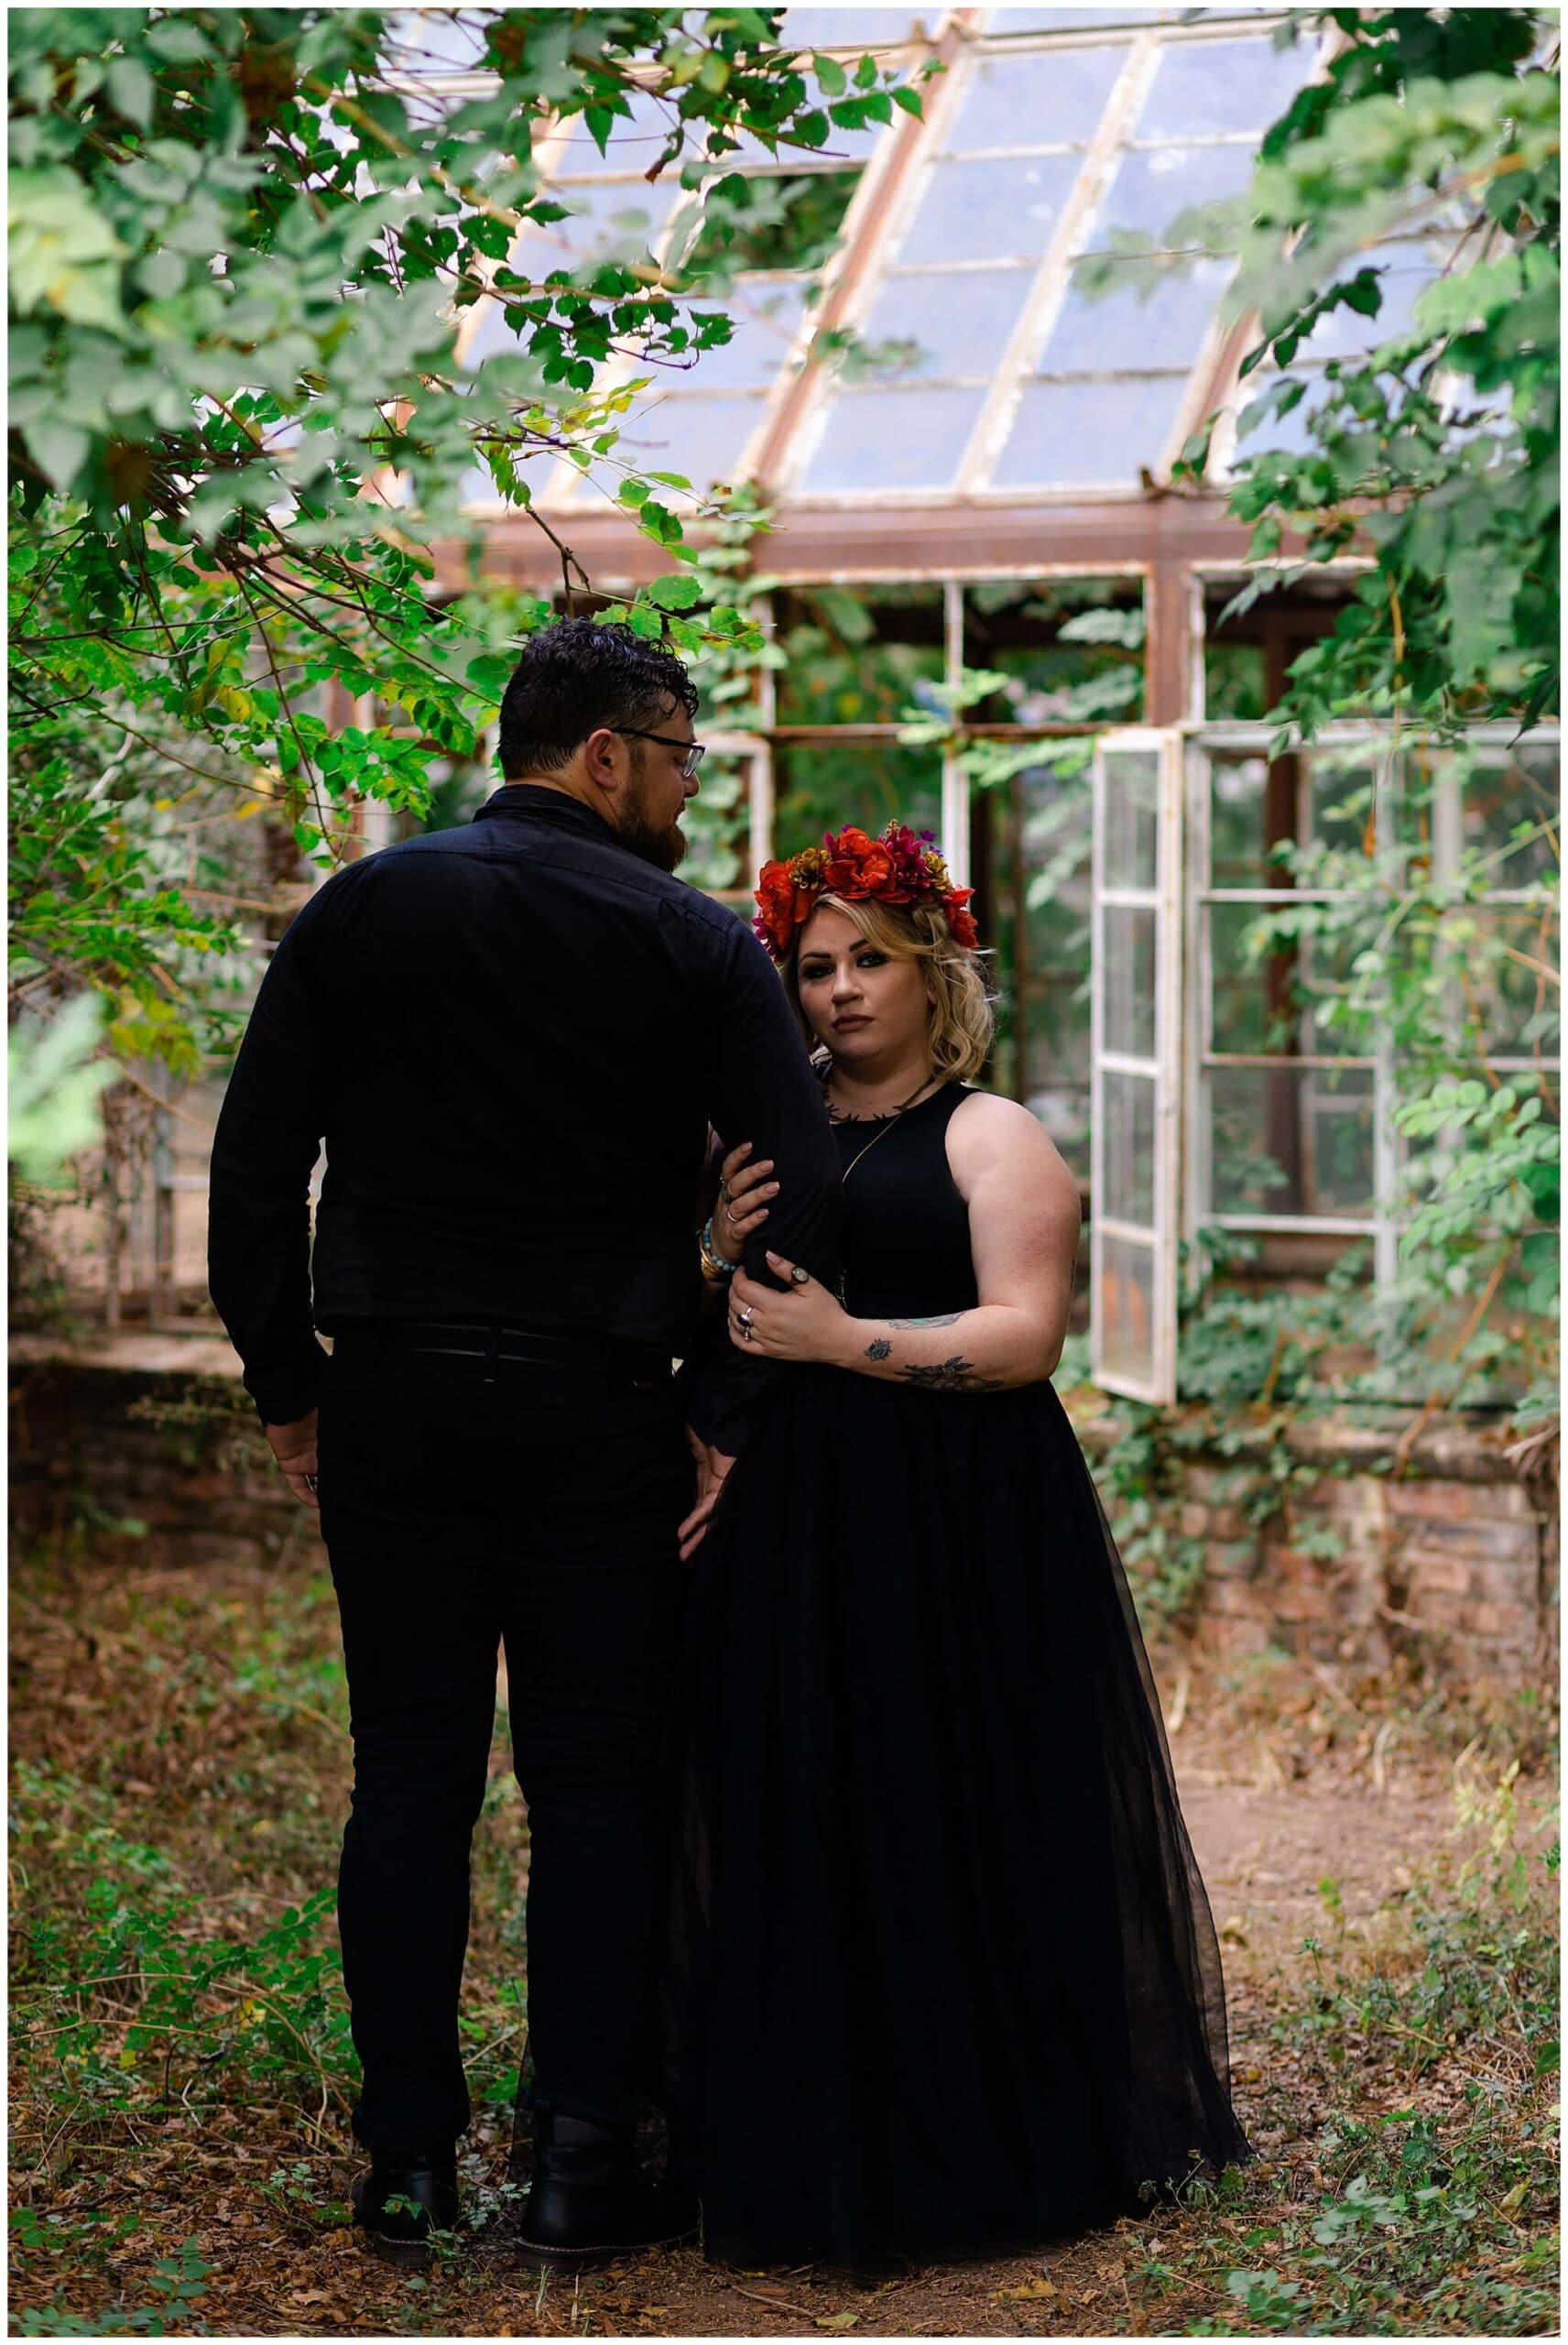 Intimate engagement session at Sekrit Theater in Austin, Texas photographed by Swish and Click Photography